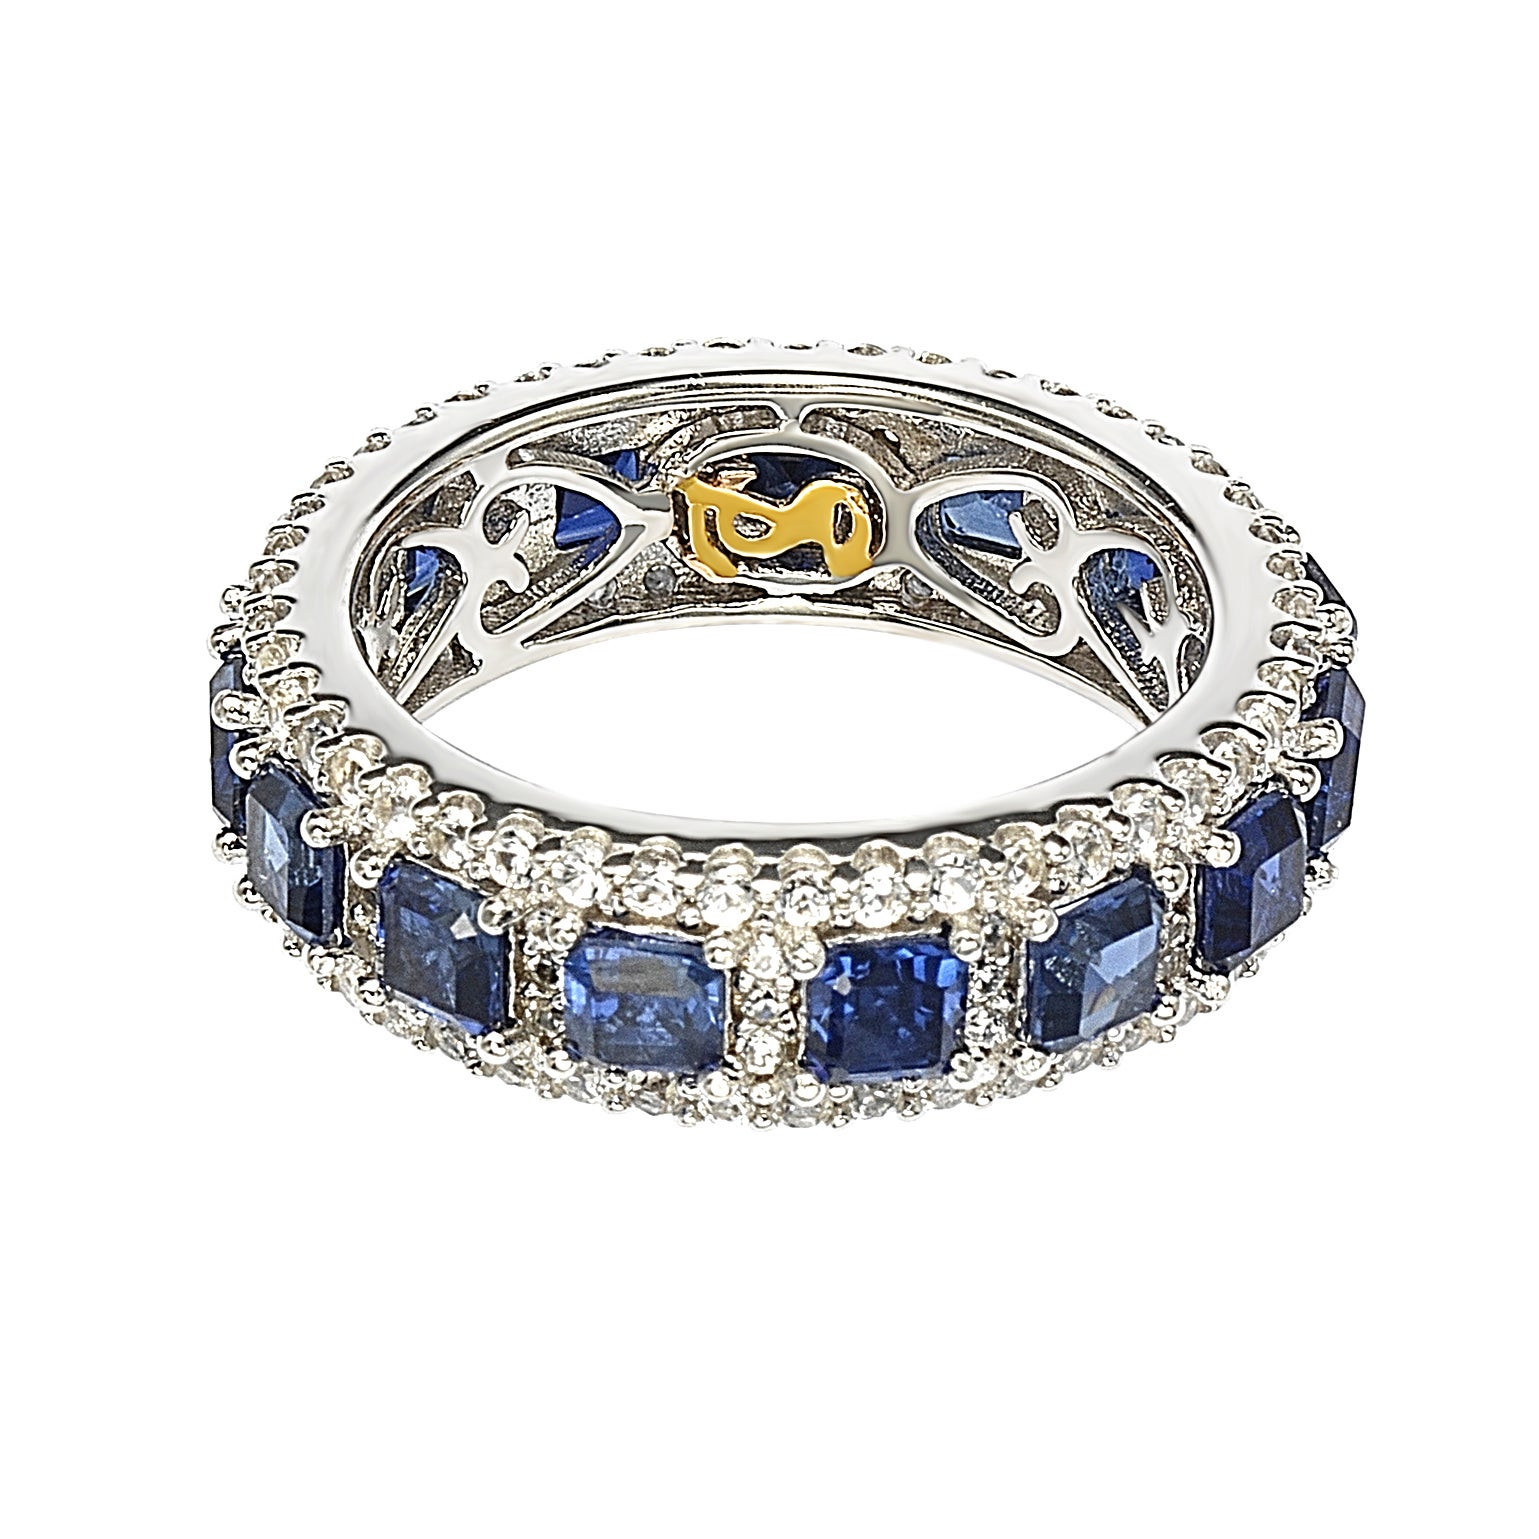 com sapphire dp band blue white eternity gold stackable sizeable anniversary amazon qkl diamond wedding ring and jewelry